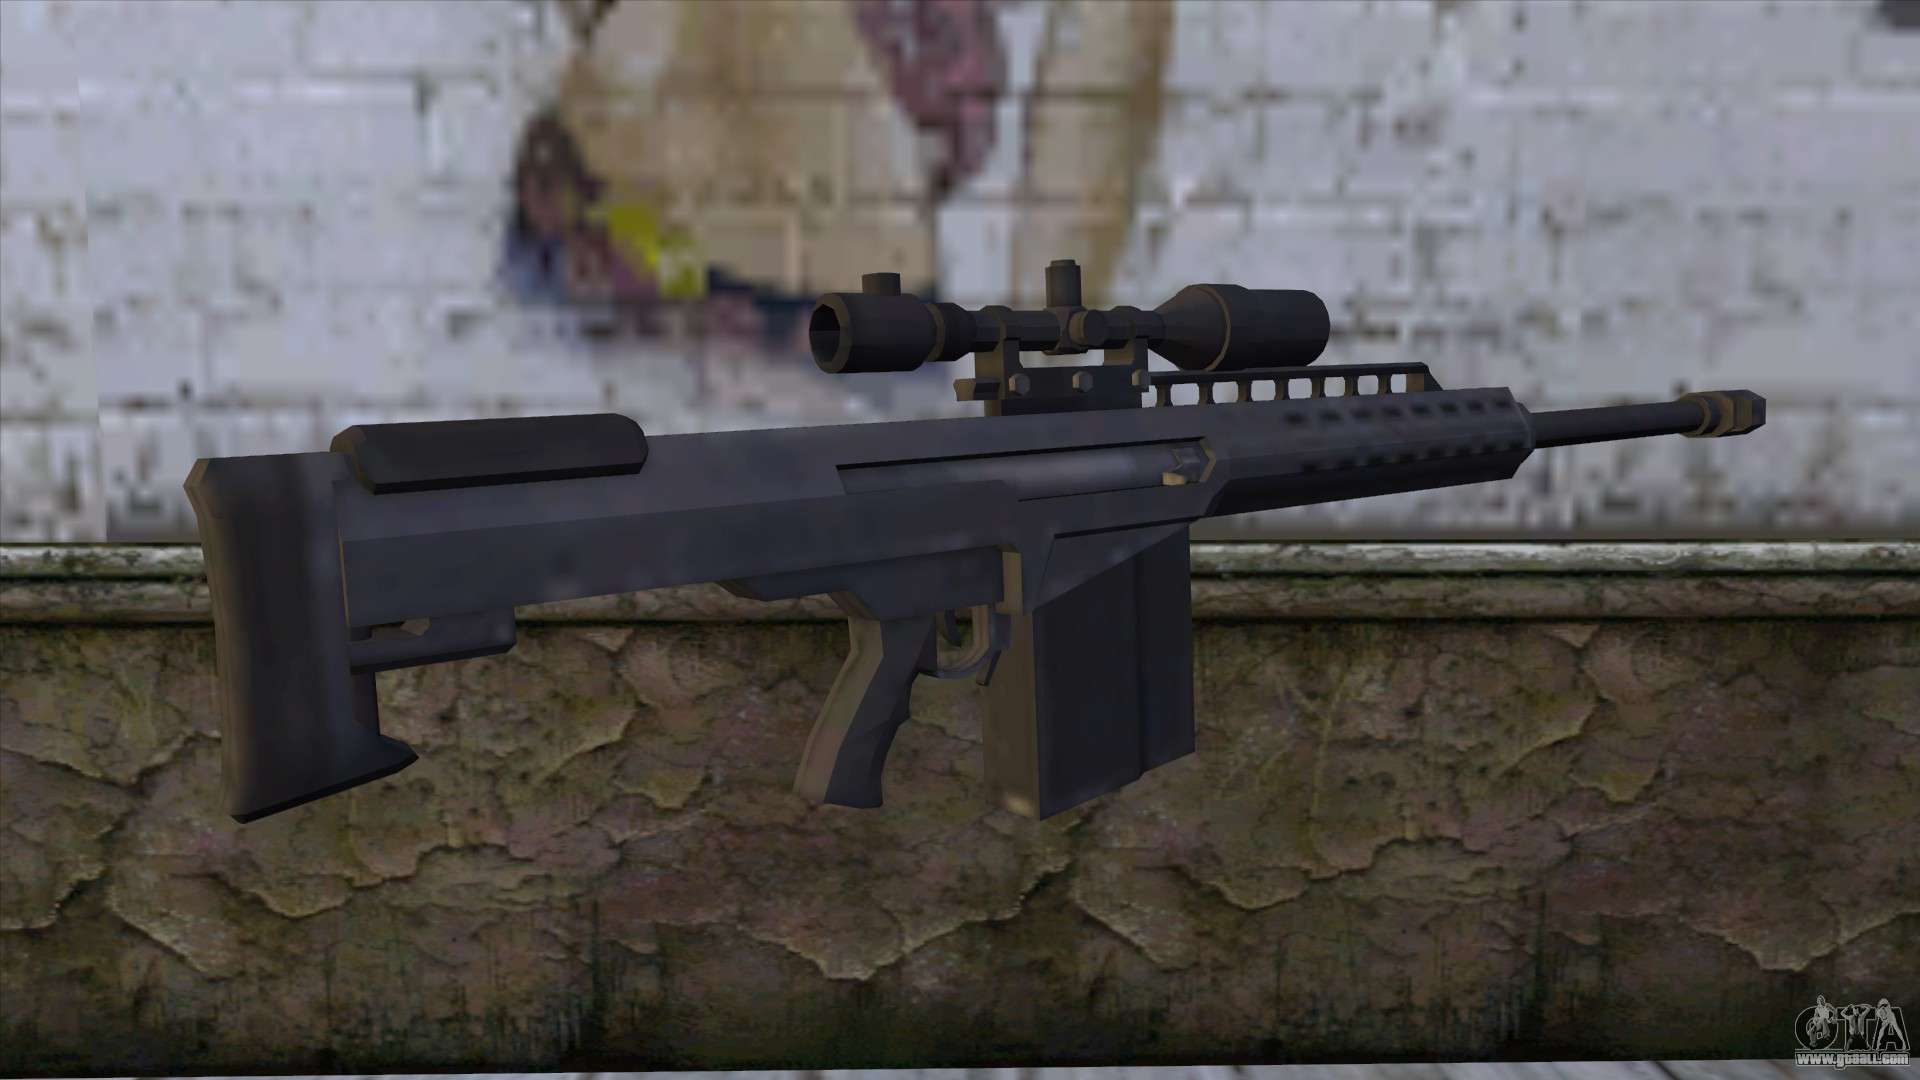 Heavy Sniper From Gta 5 V2 For Gta San Andreas